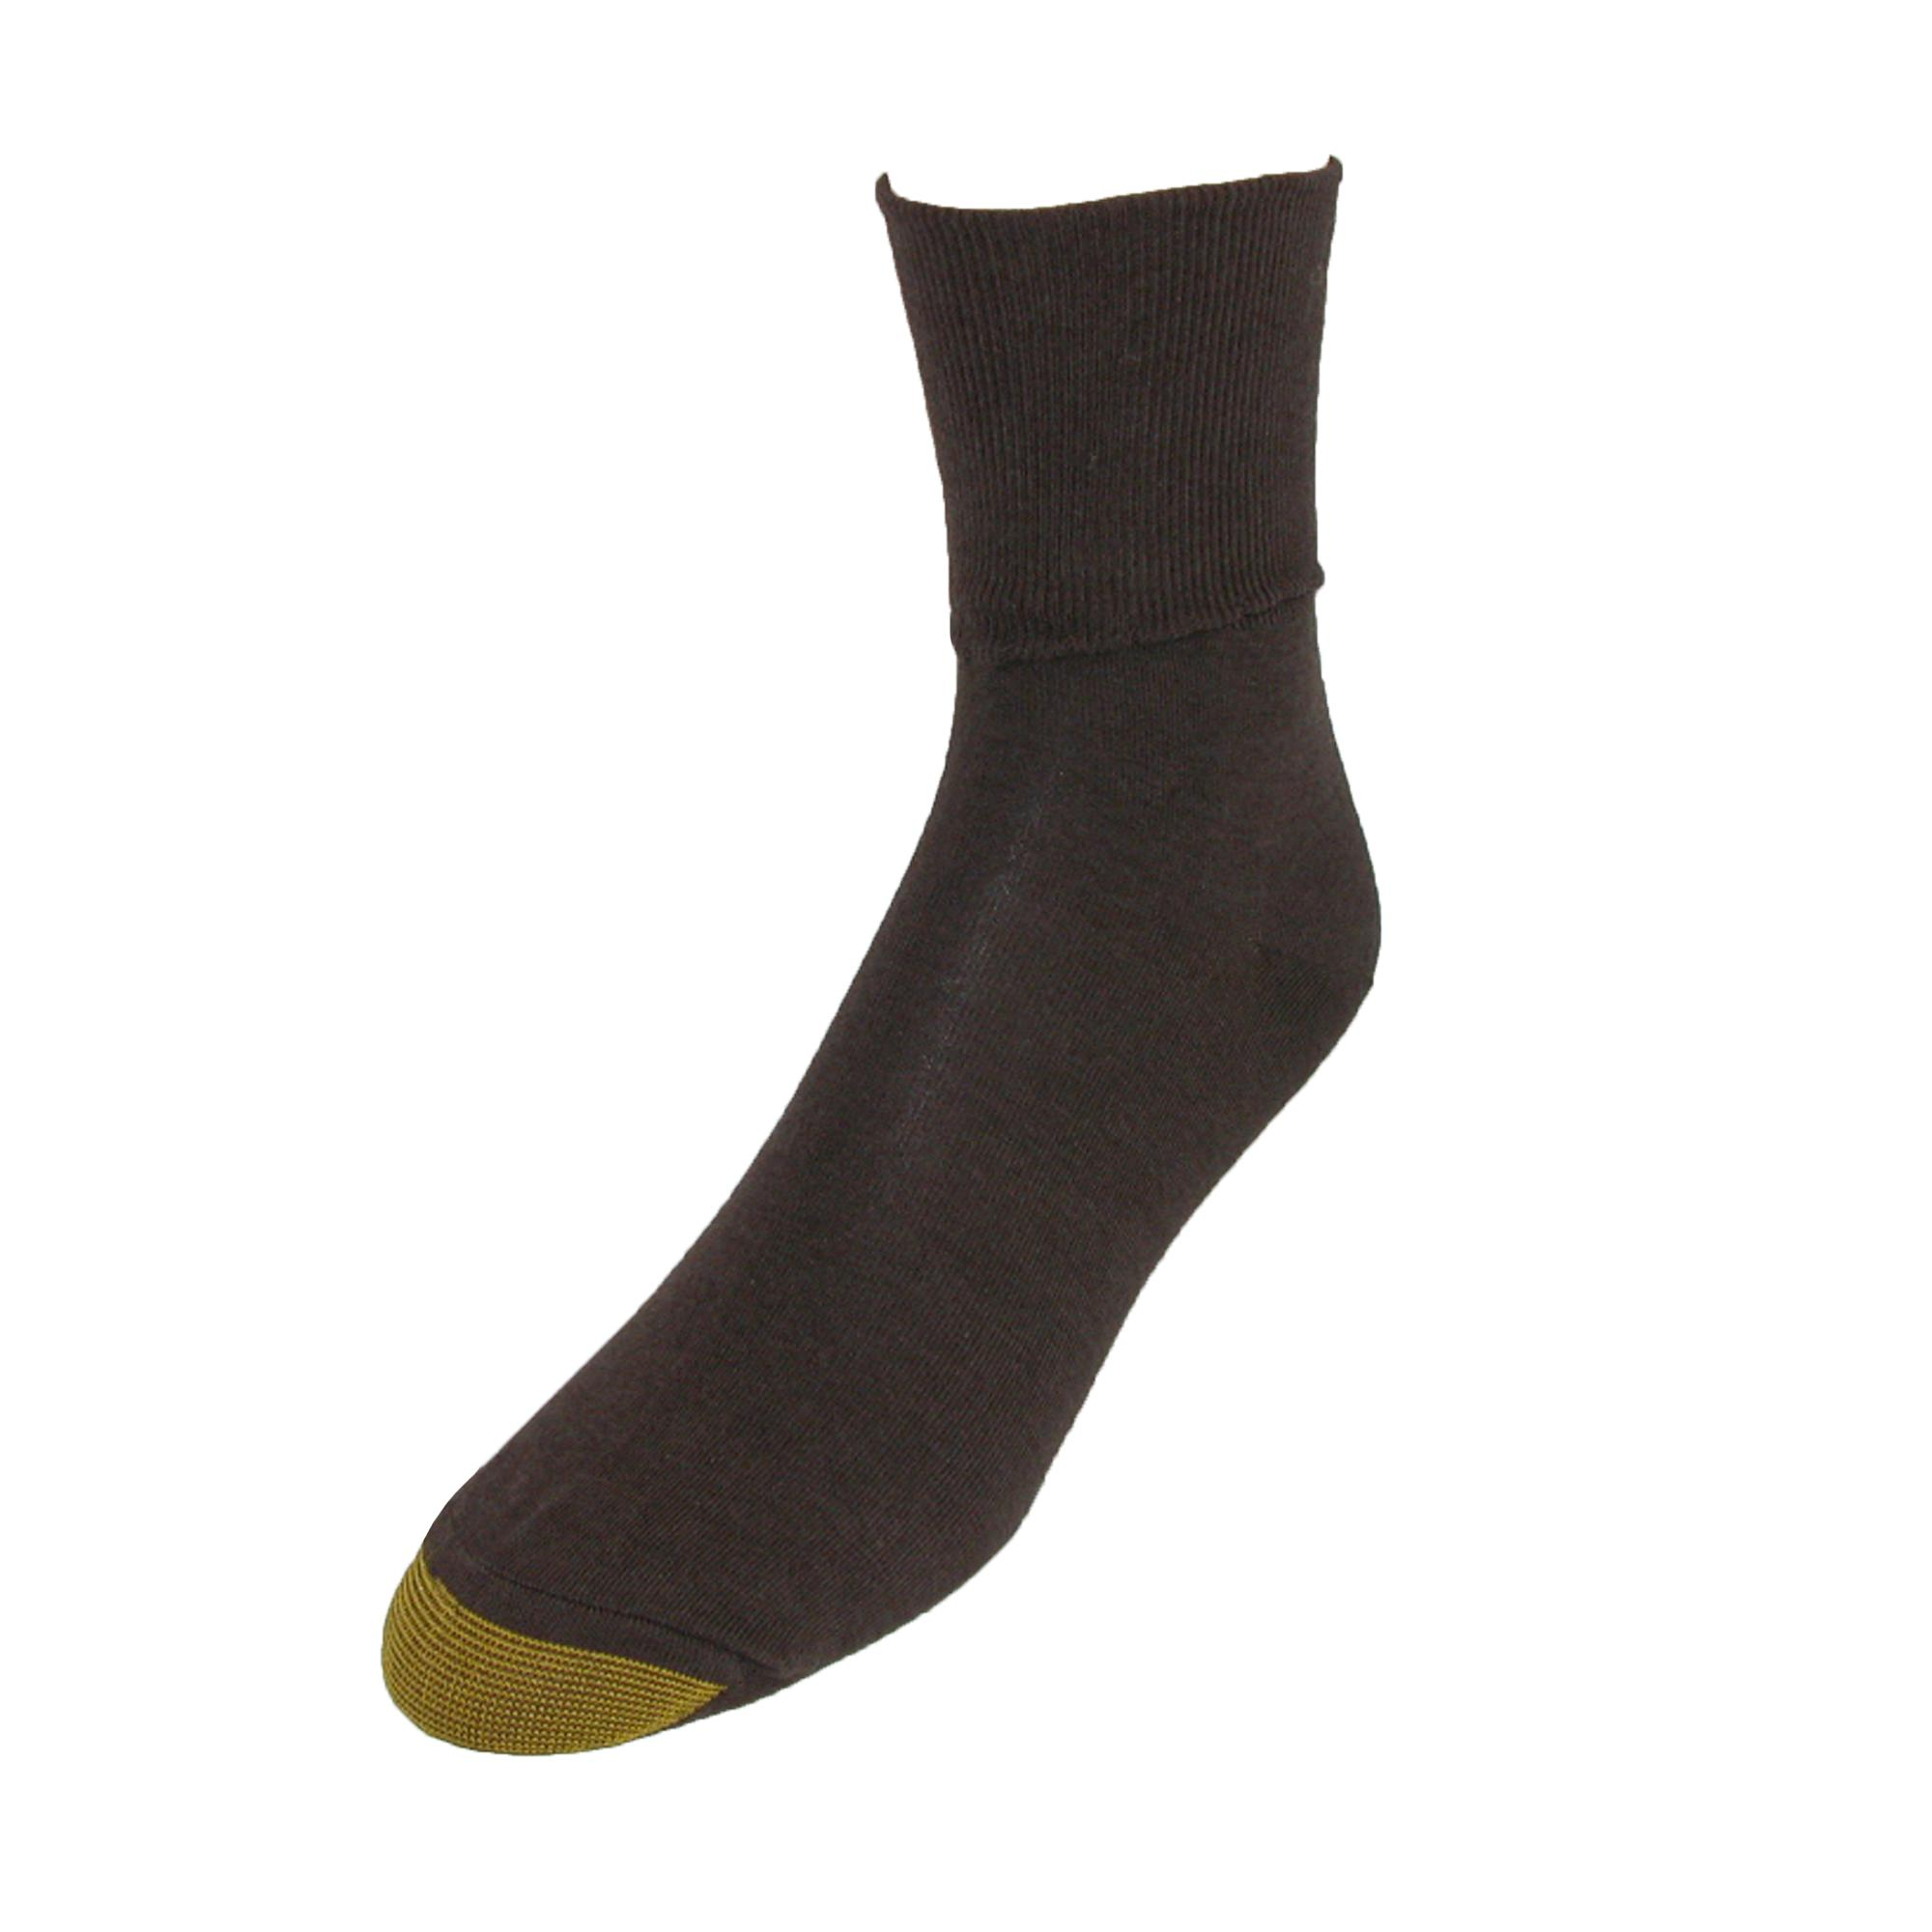 New Gold Toe Women's Cotton Plus Size Turn Cuff Ankle ...